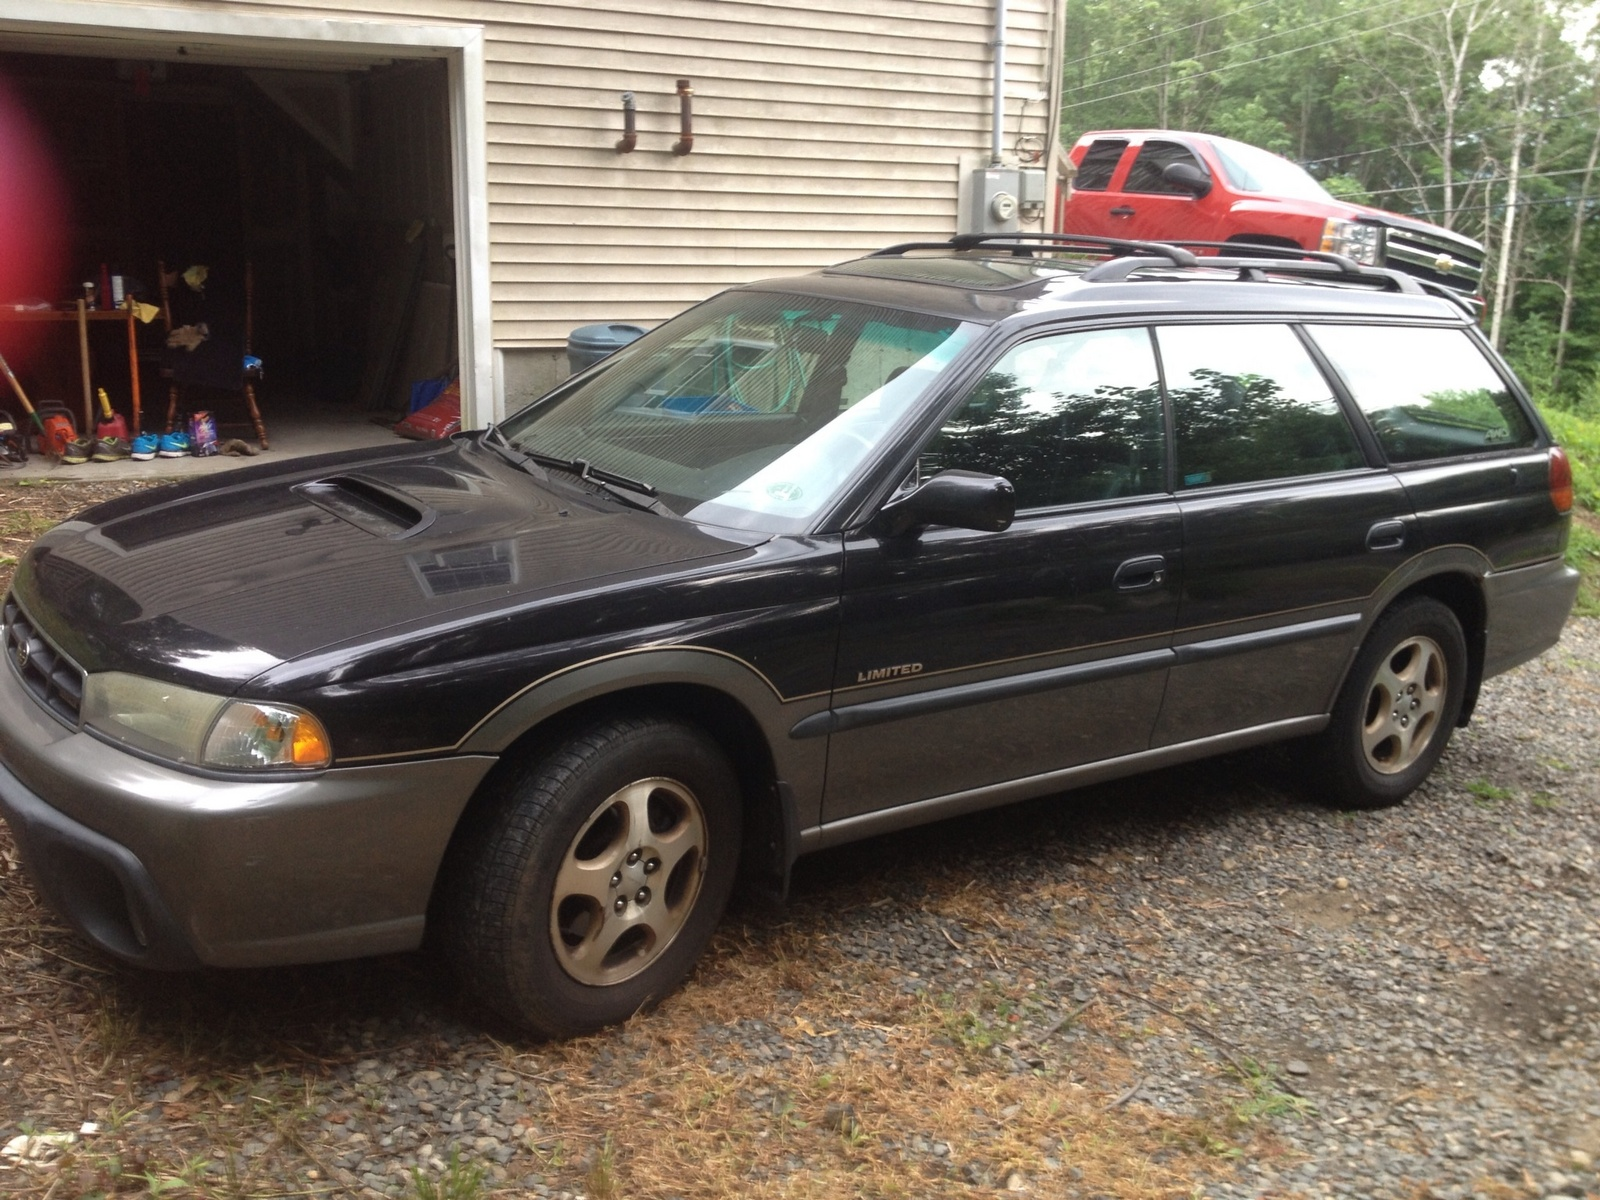 1998 Subaru Outback Limited 252 Parts That Fit A Legacy 25 Plus Thousands Of Universal